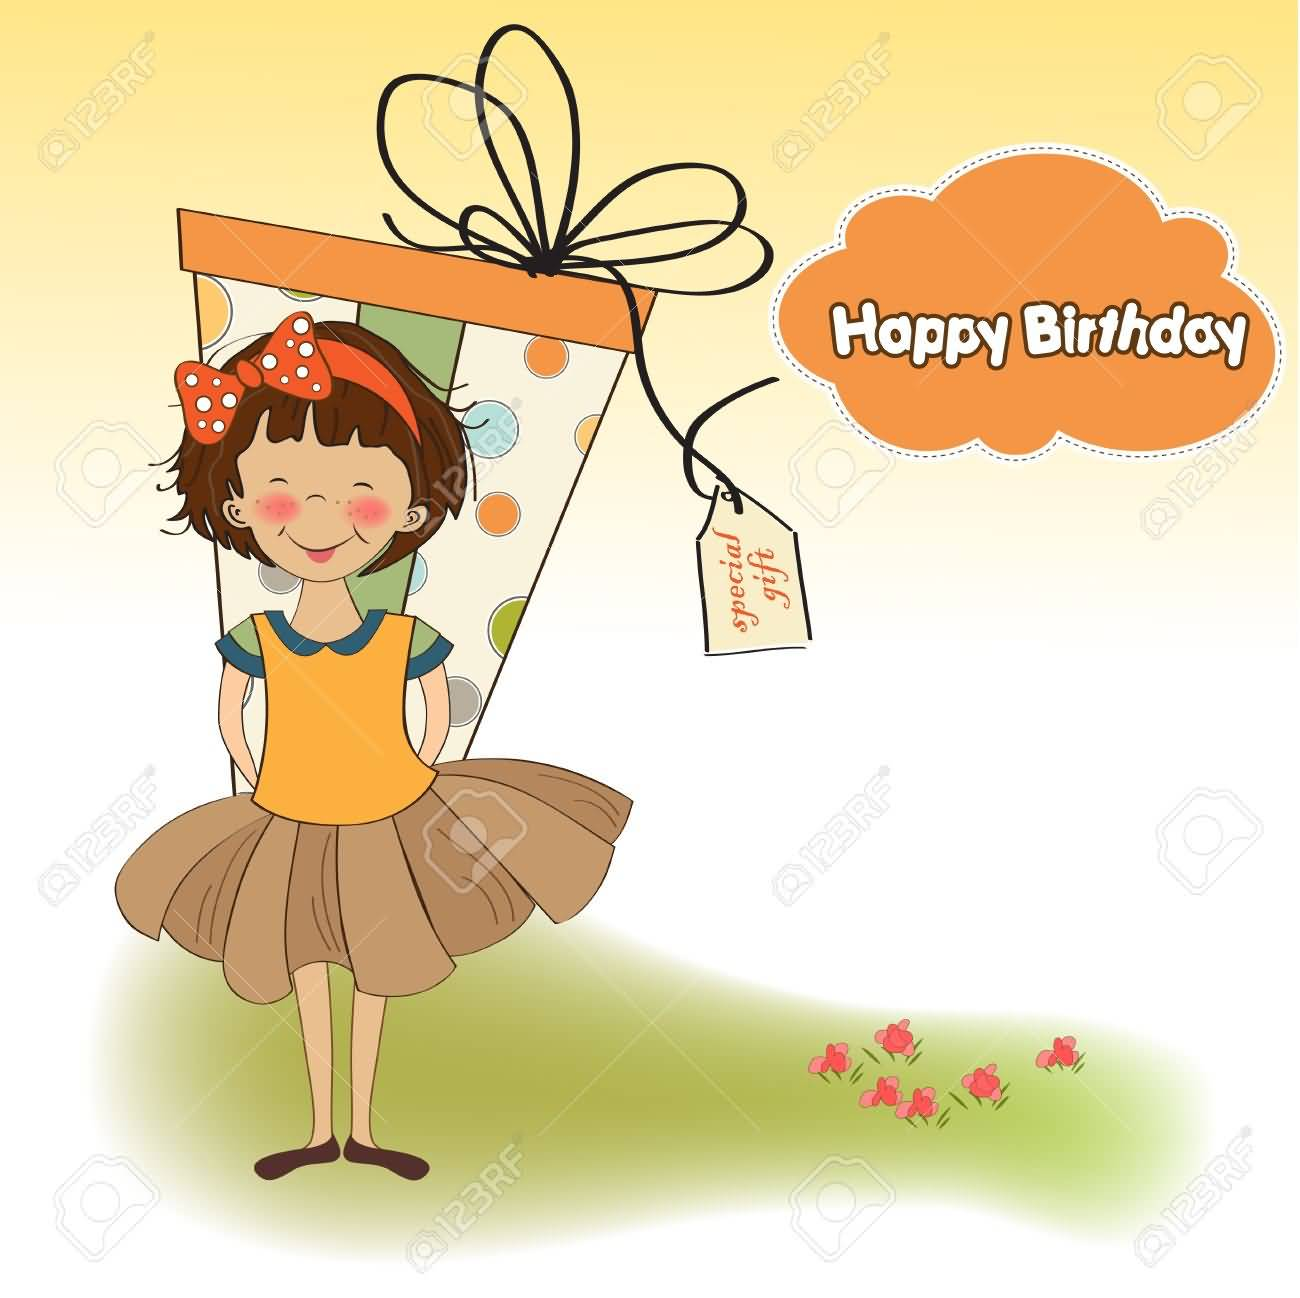 birthday greeting drawing ; awesome-drawing-birthday-wishes-for-sweet-girls